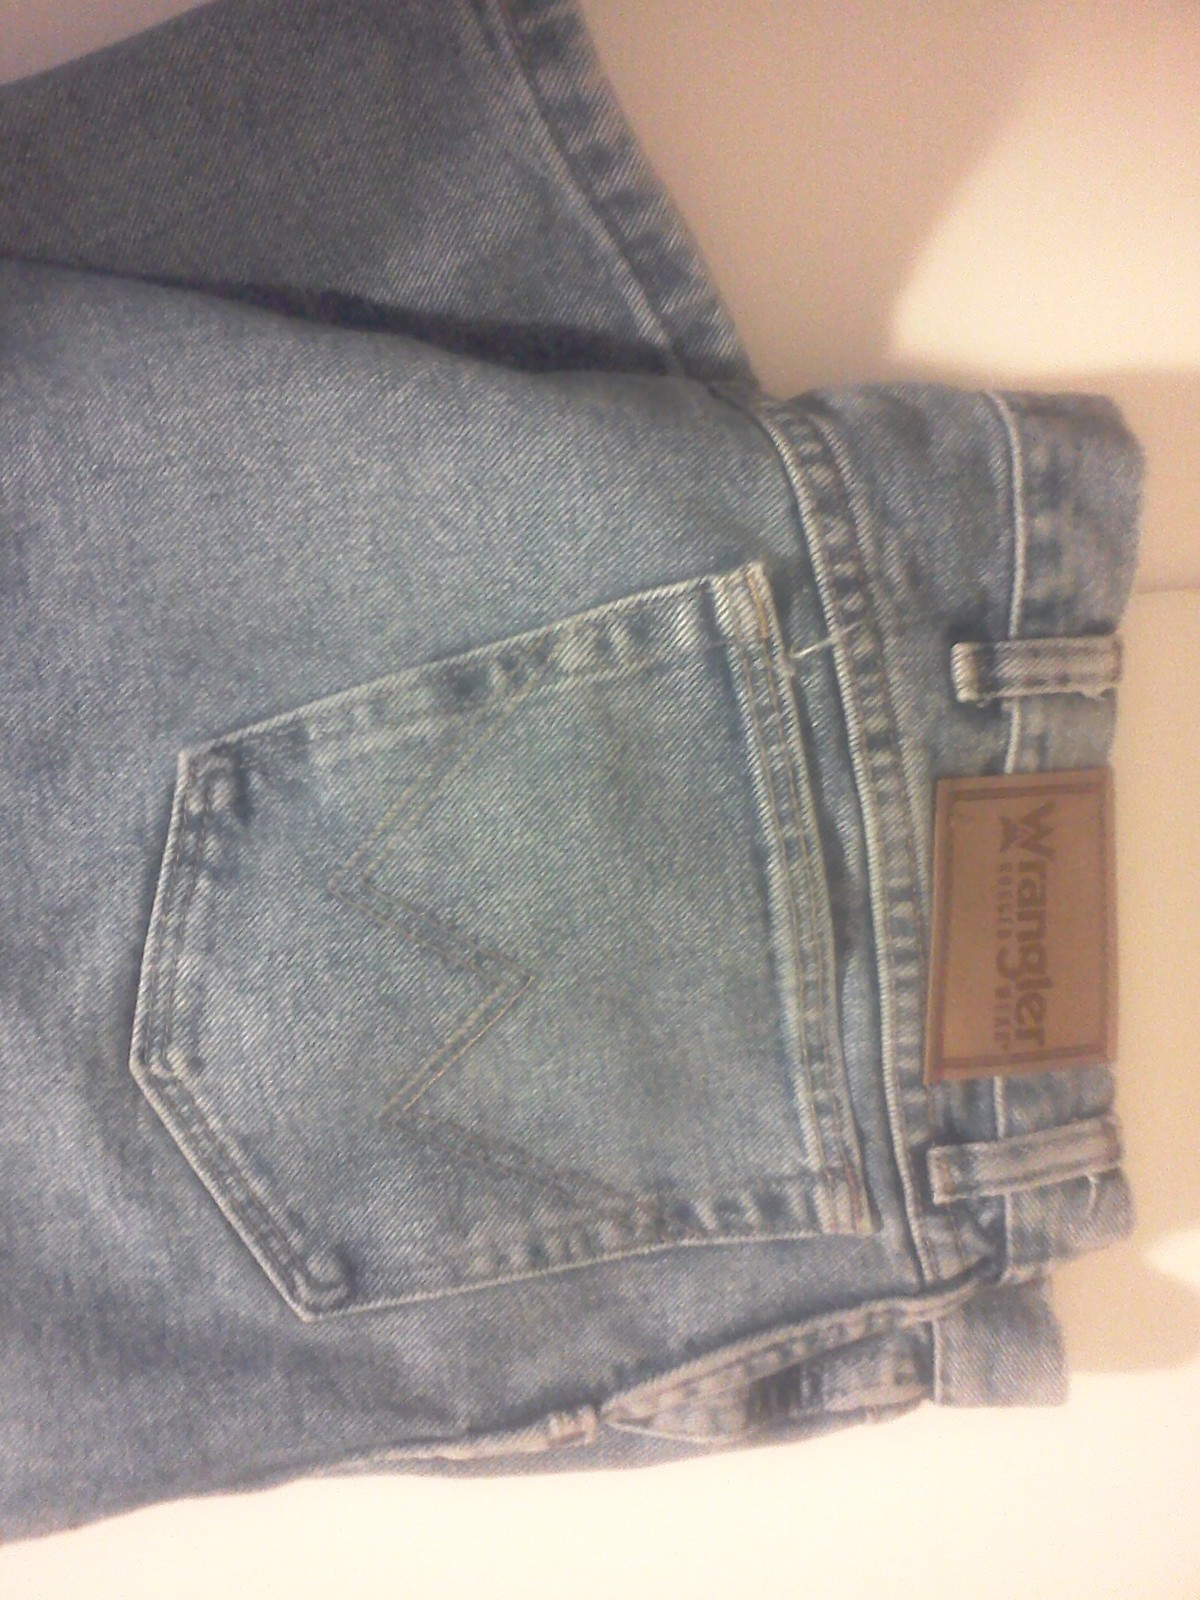 About Men's Jeans Find great men's jeans in a variety of fits, colors and washes, all crafted from quality cotton denim and backed by our unconditional guarantee. When it comes to jeans for men, Eddie Bauer is the optimal place to shop.